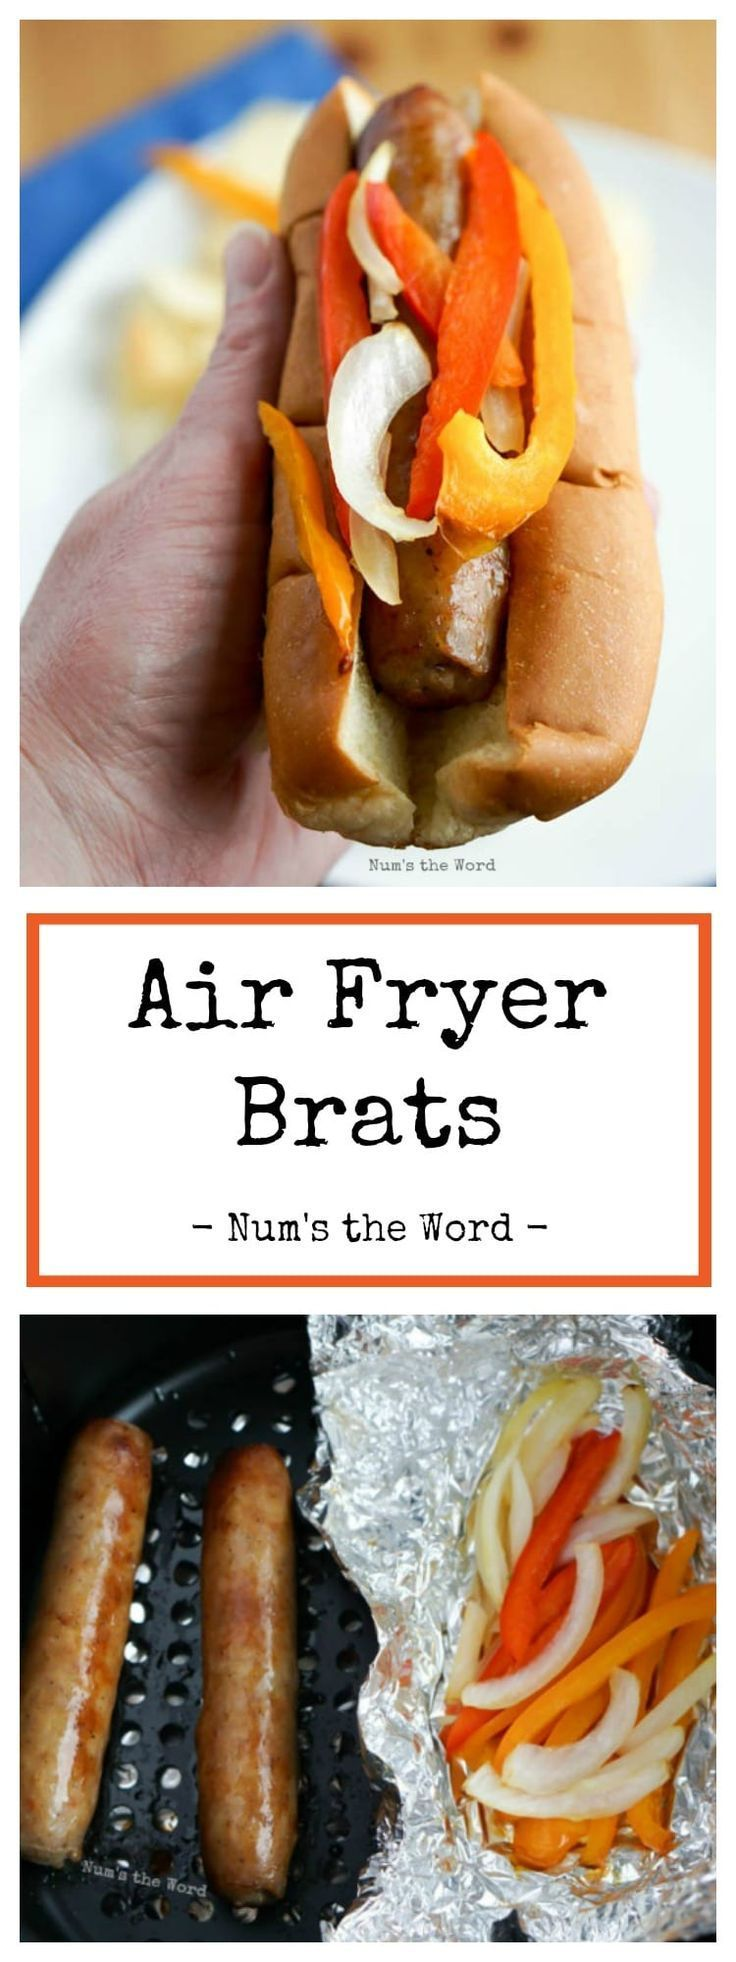 Fryer Brats with onions and bell peppers are made entirely in the Air Fryer.  In less than 20 Minutes you'll have perfectly cooked brats that are juicy and ready to pop in your mouth!  Perfect for when you don't want to heat up the grill!